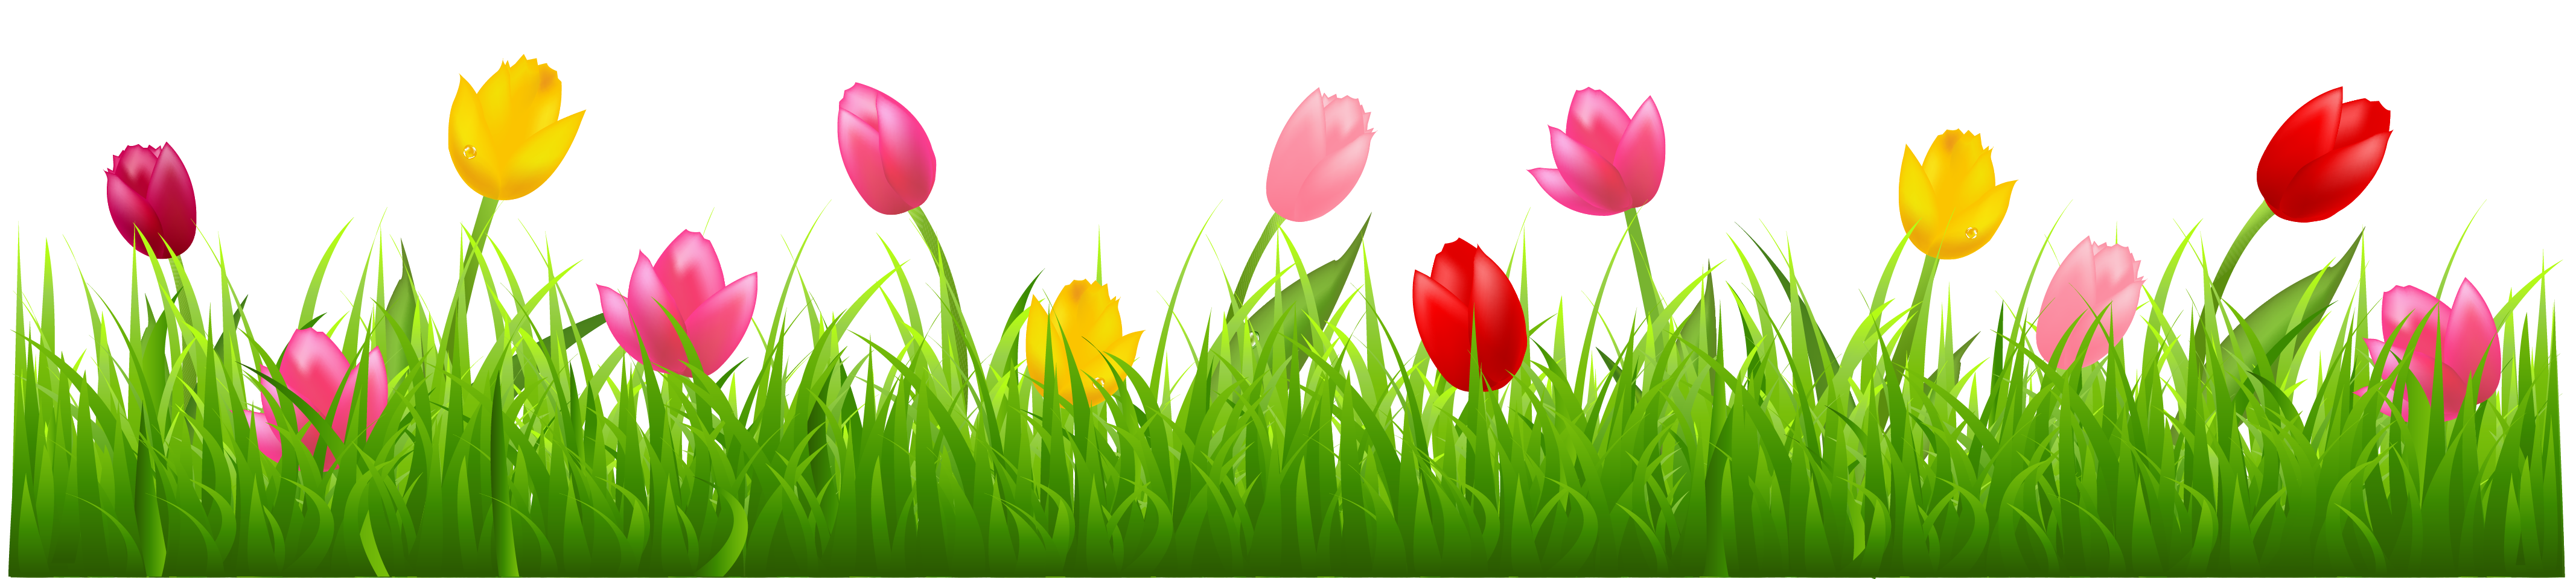 freeuse stock Grass with Colorful Tulips PNG Clipart